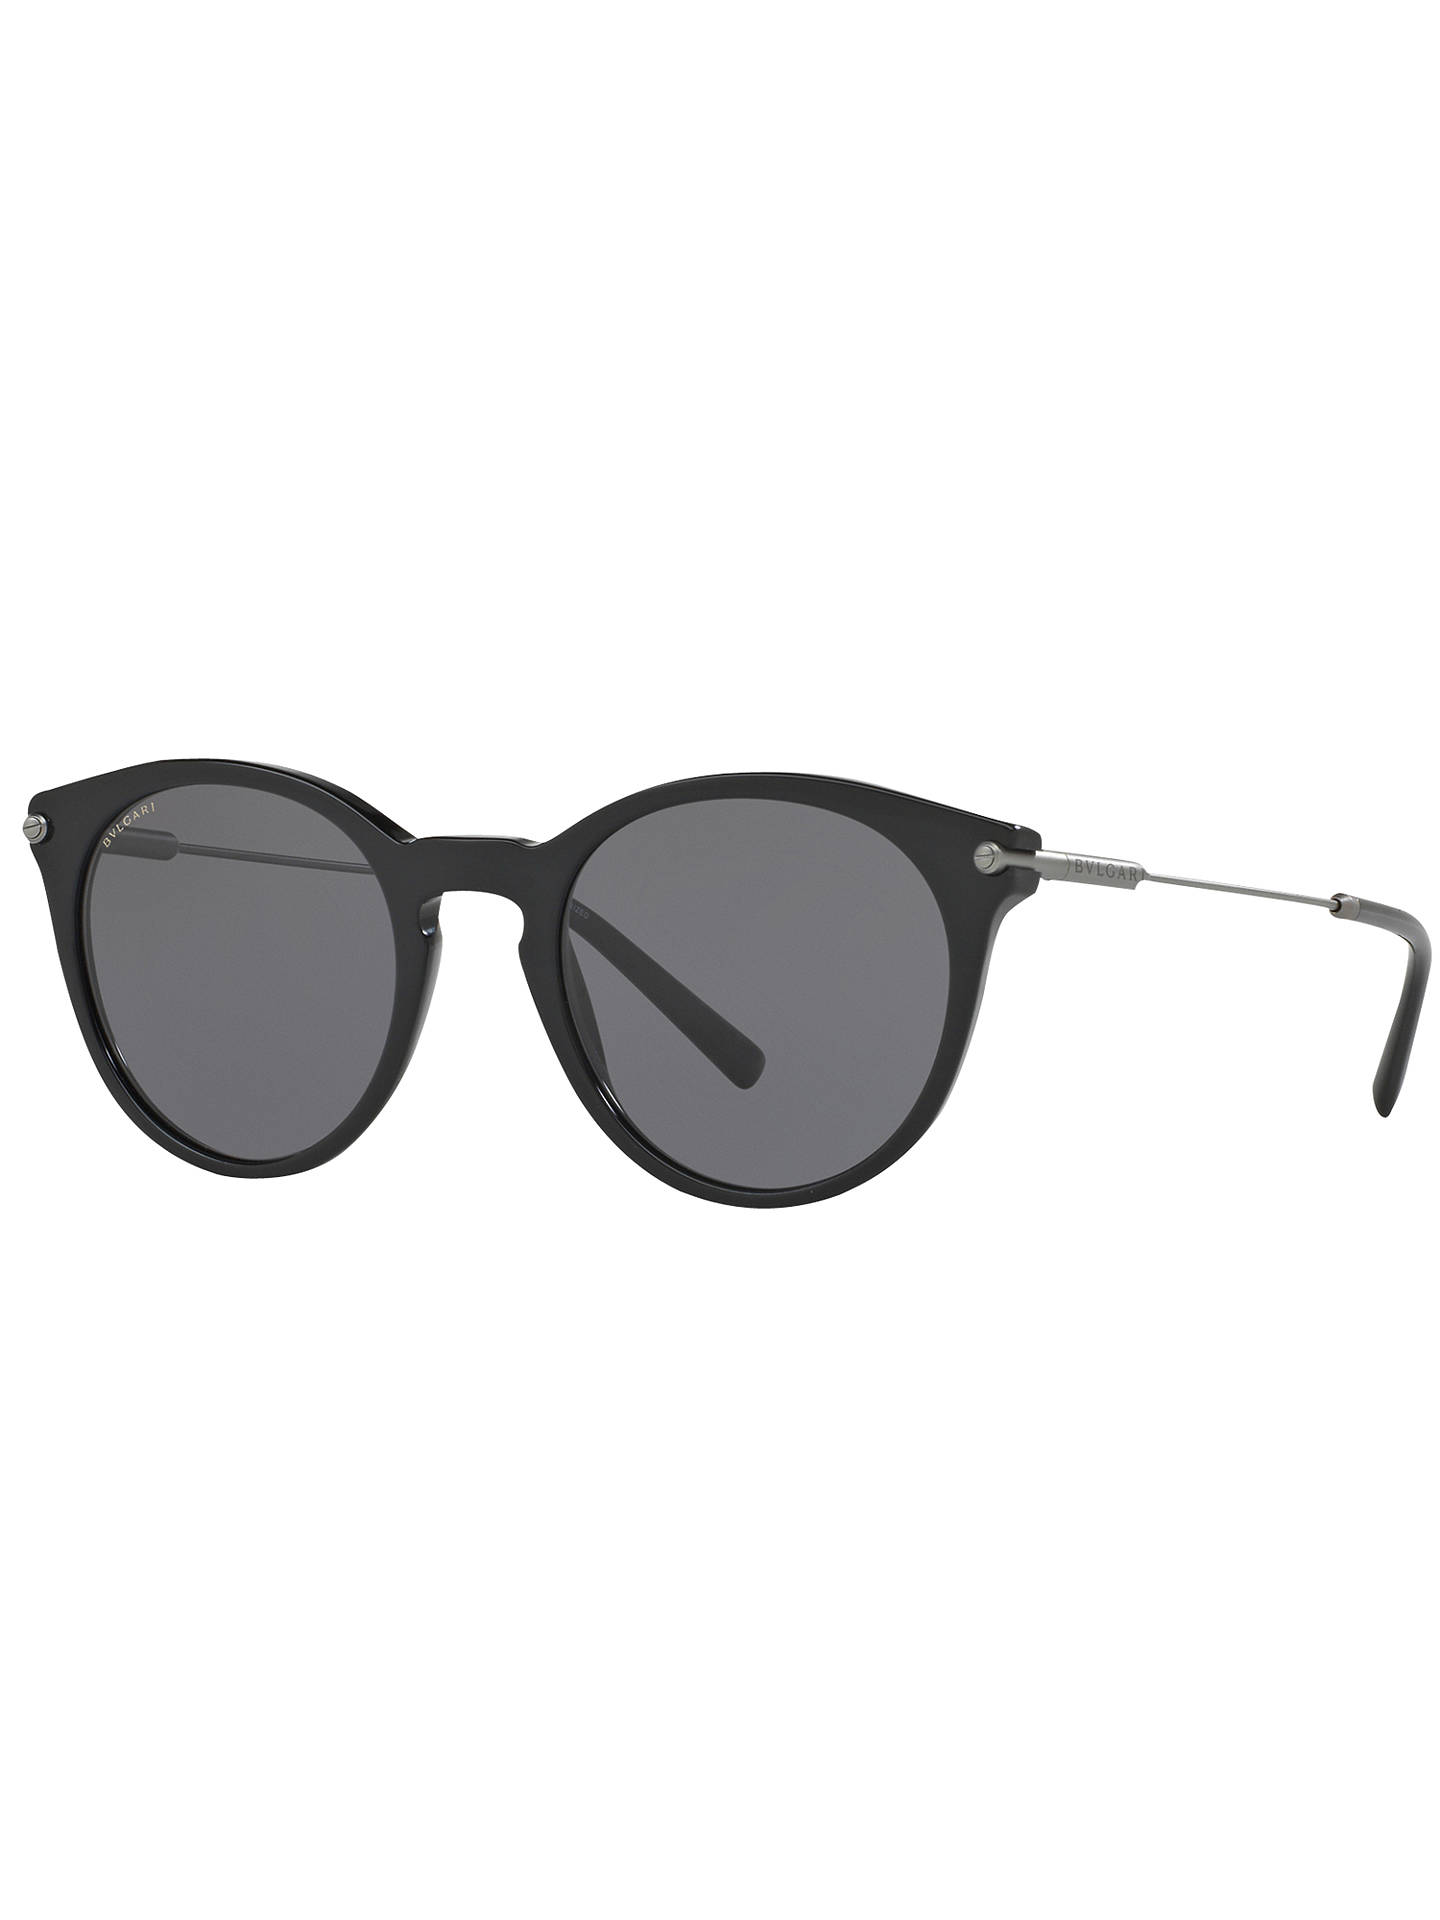 BuyBVLGARI BV7030 Polarised Oval Sunglasses, Black/Grey Online at johnlewis.com